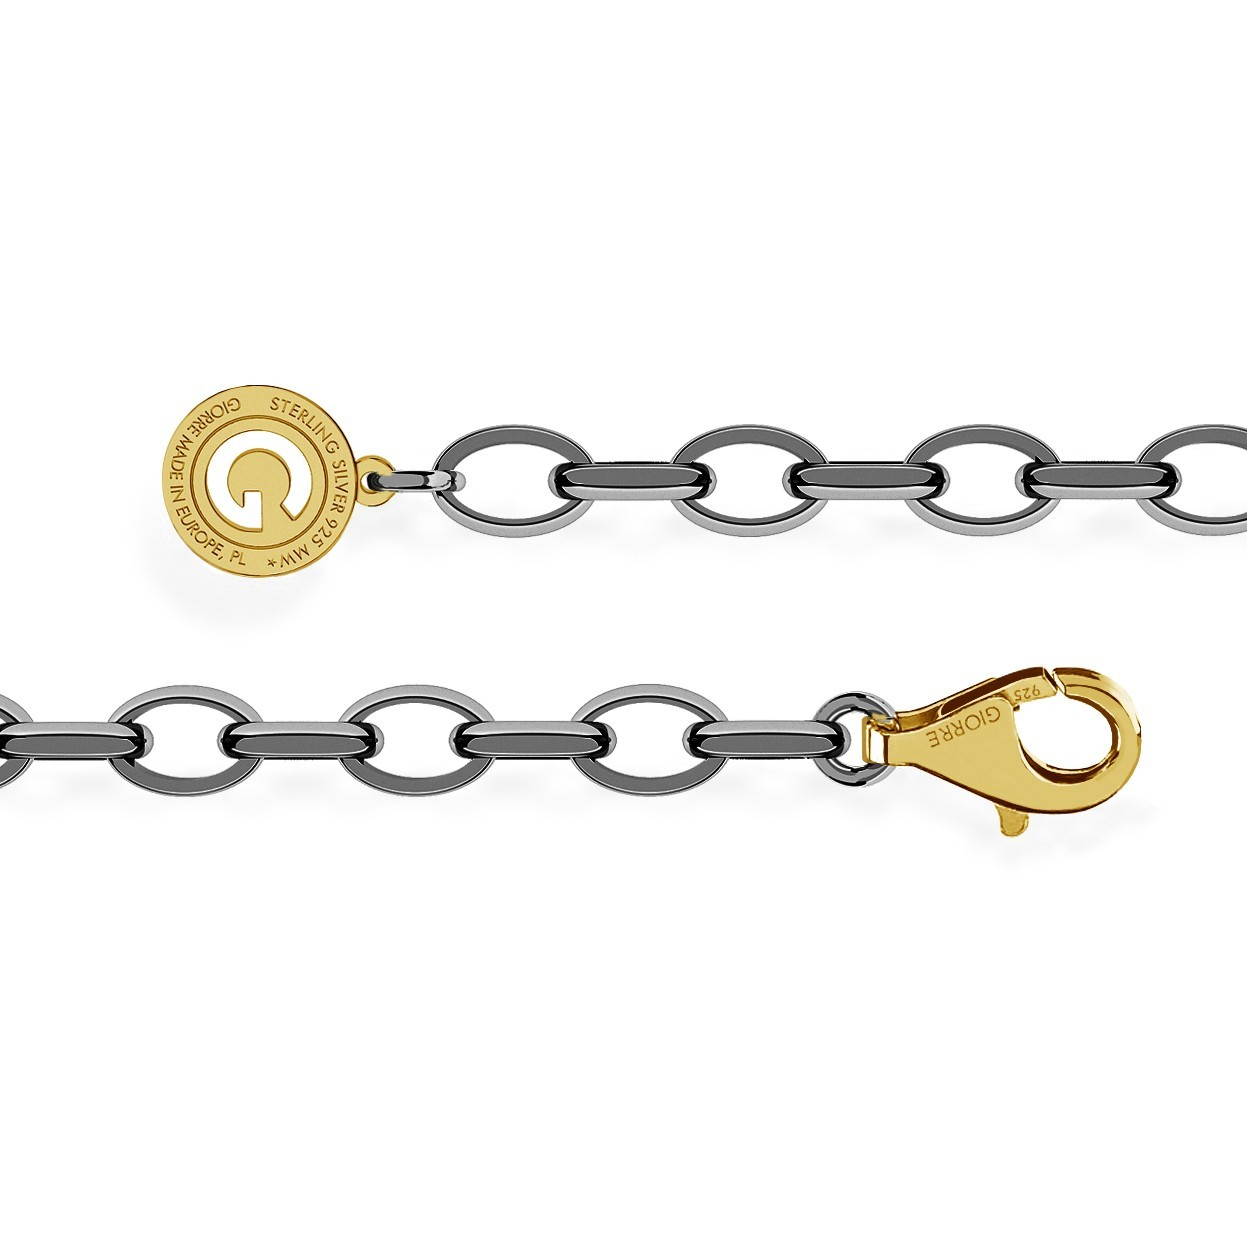 STERLING SILVER BRACELET 16-24 CM BLACK RHODIUM, YELLOW GOLD CLASP, LINK 7X5 MM